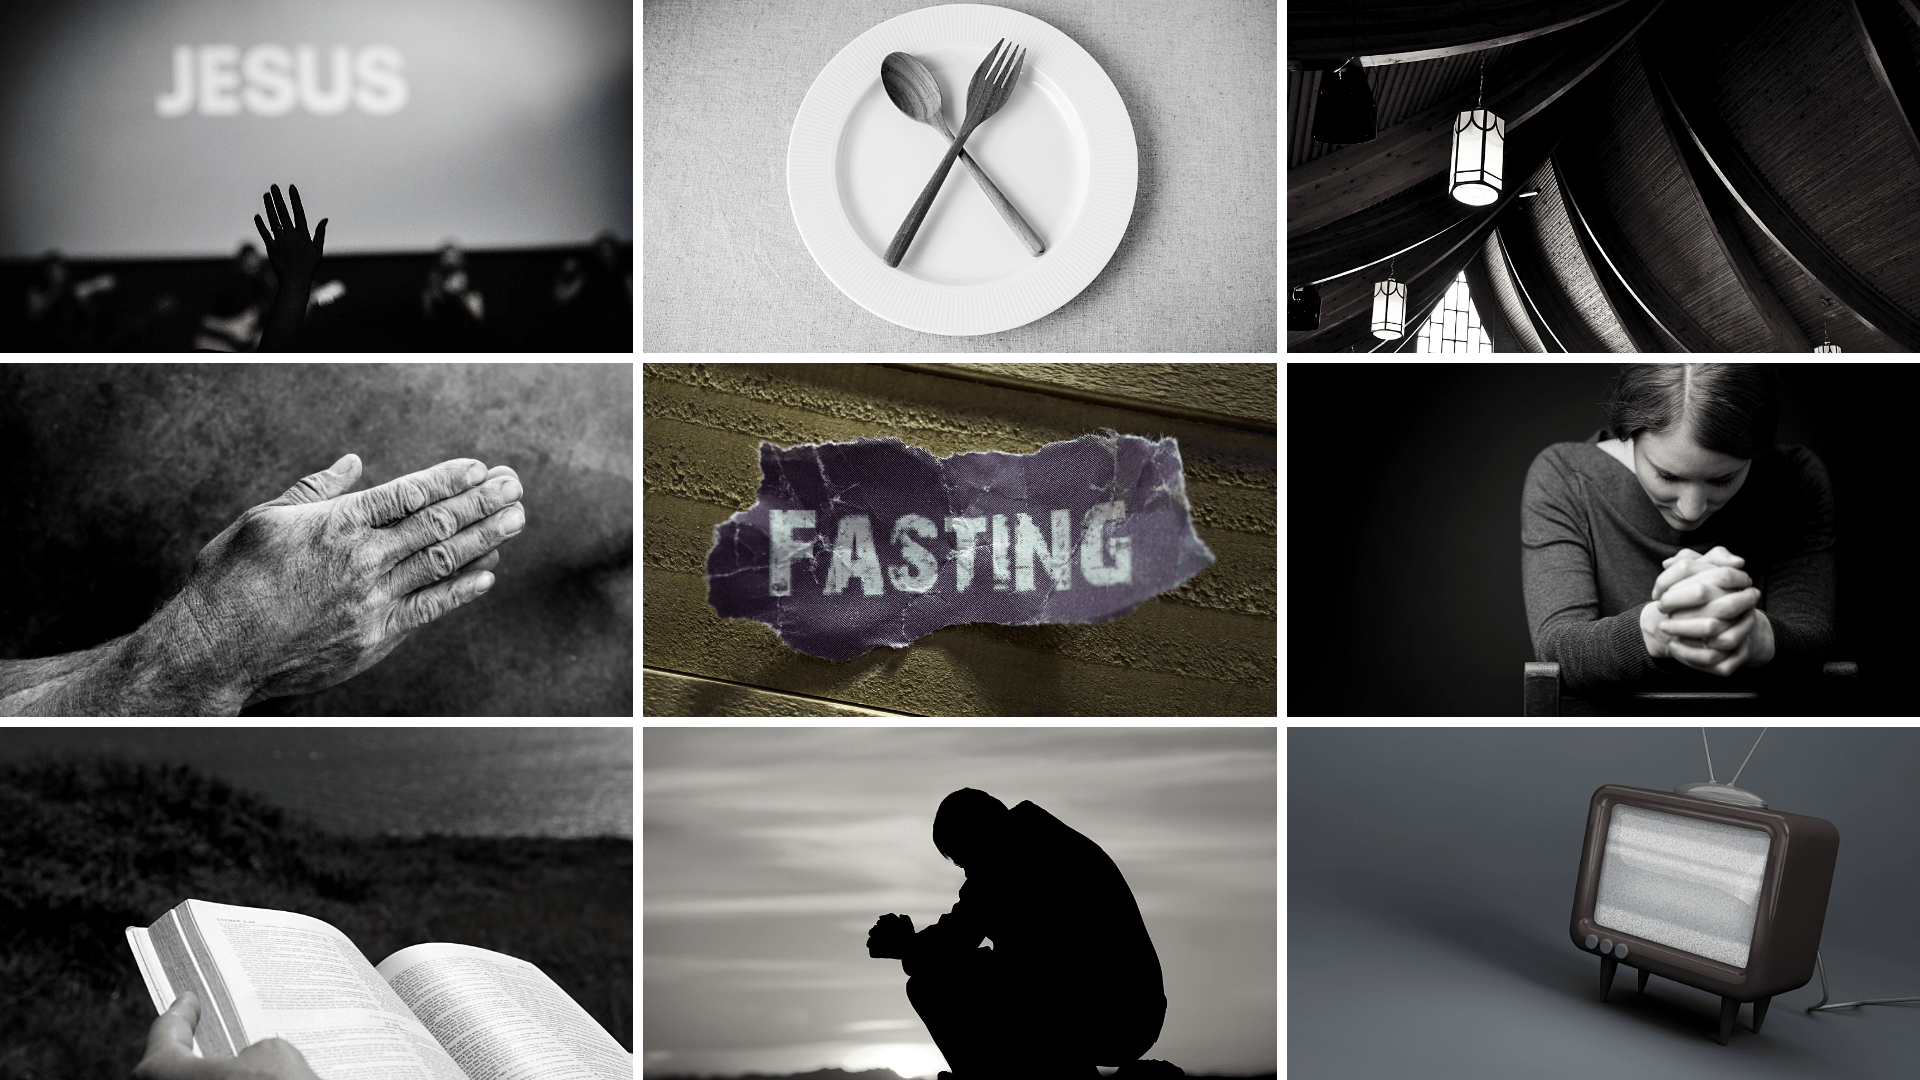 Church-wide day of fasting and prayer on Thurs May 13 for our hospitals, care homes, and health care workers